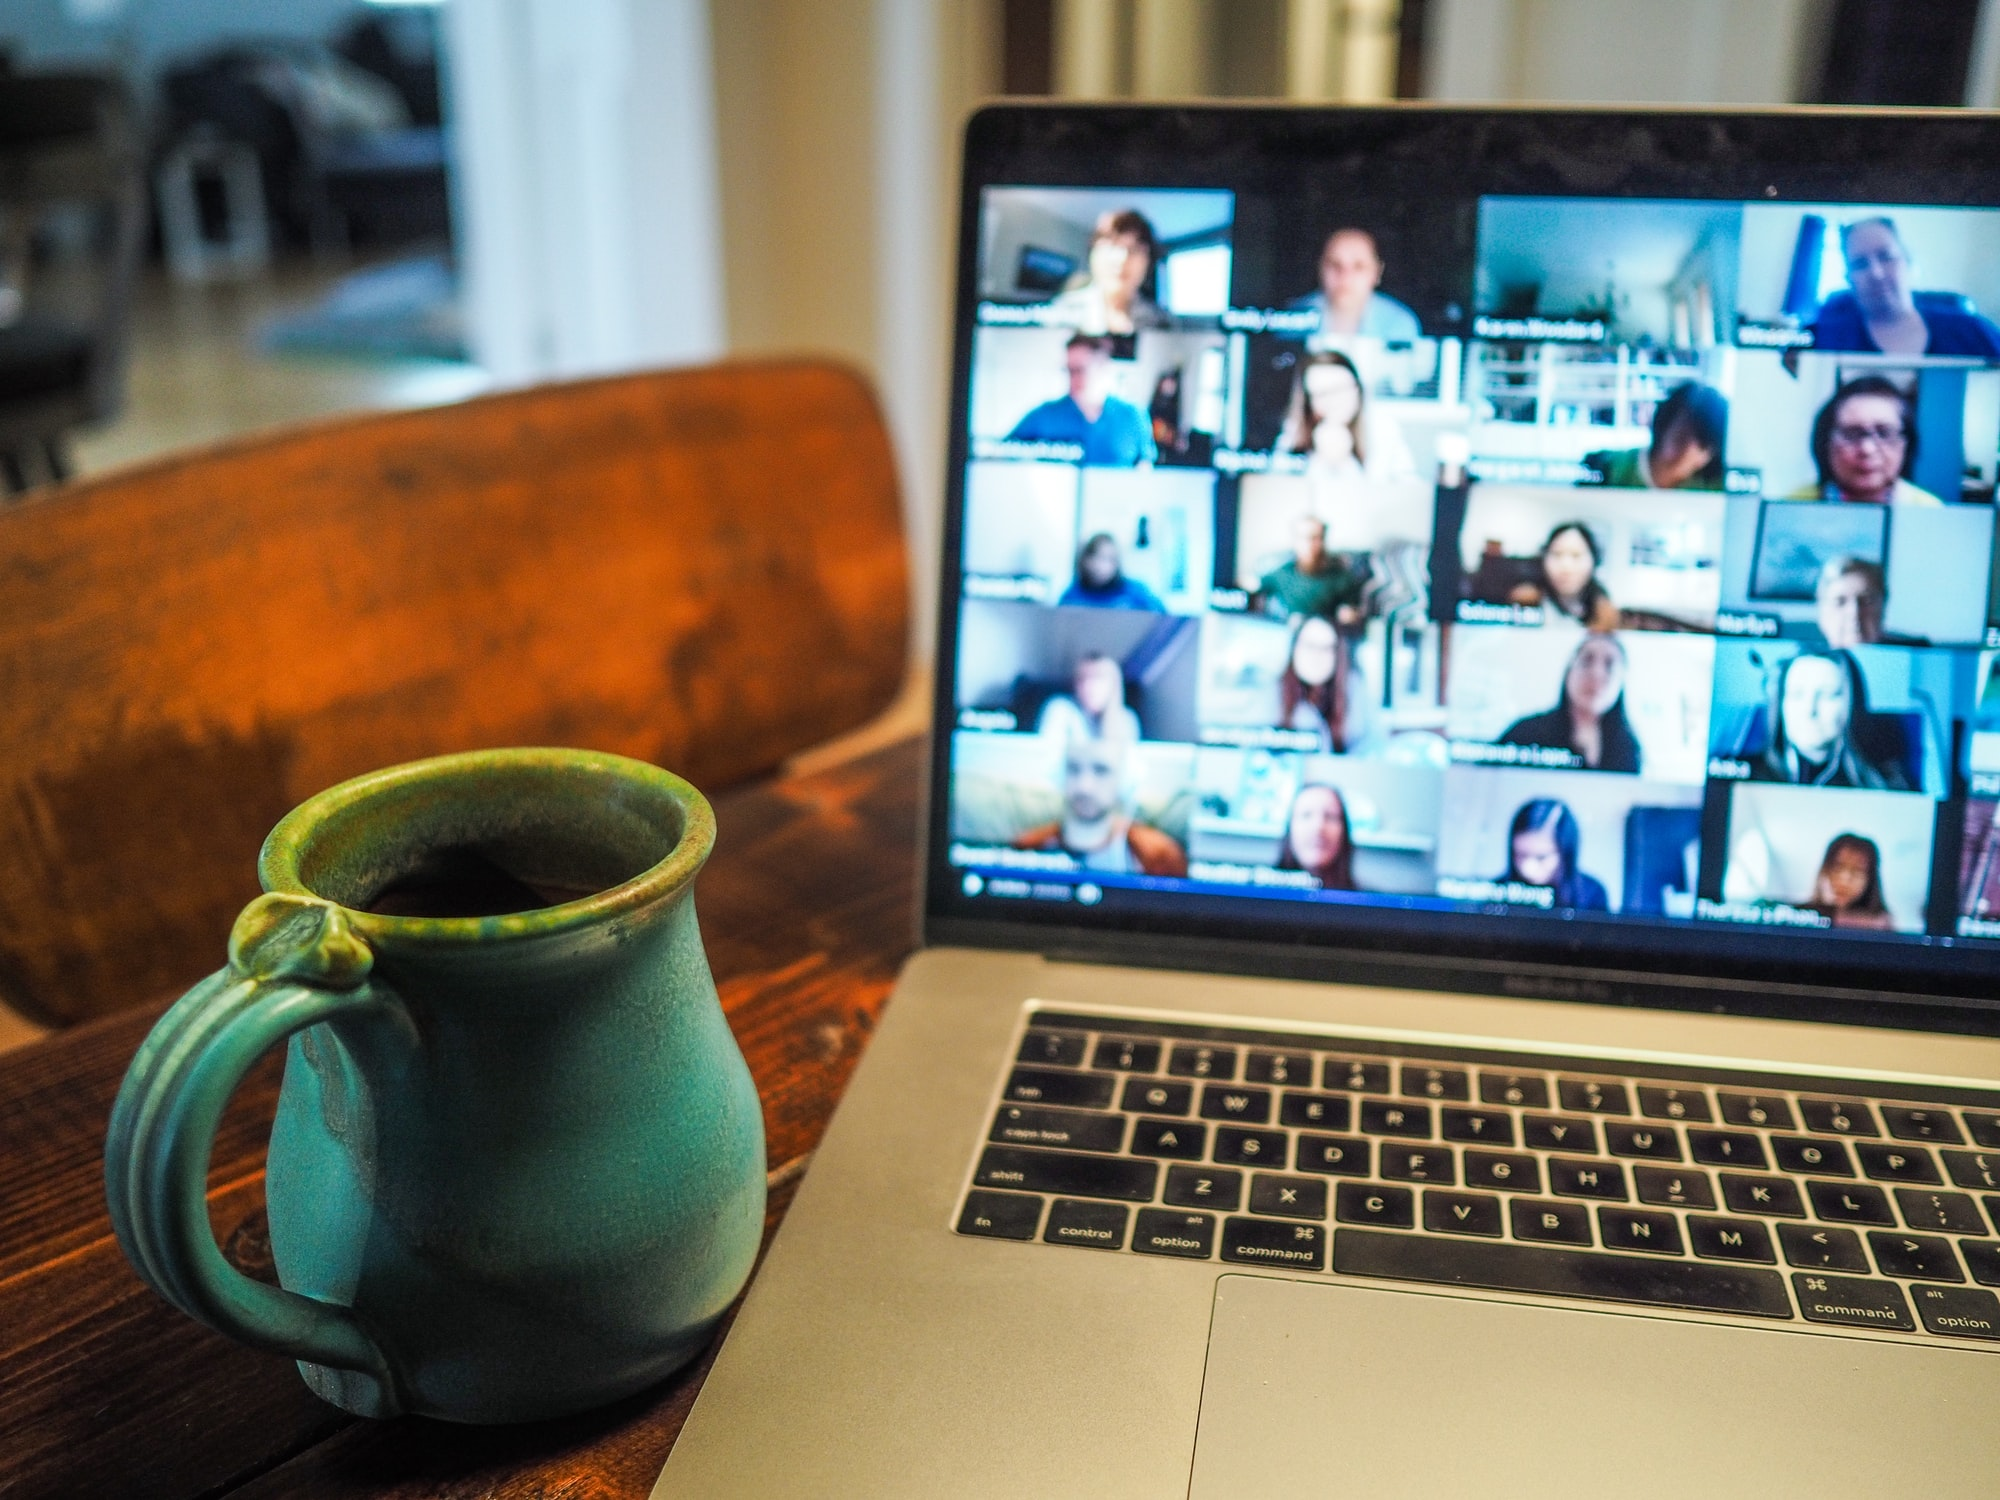 Thoughts about Online Conferences